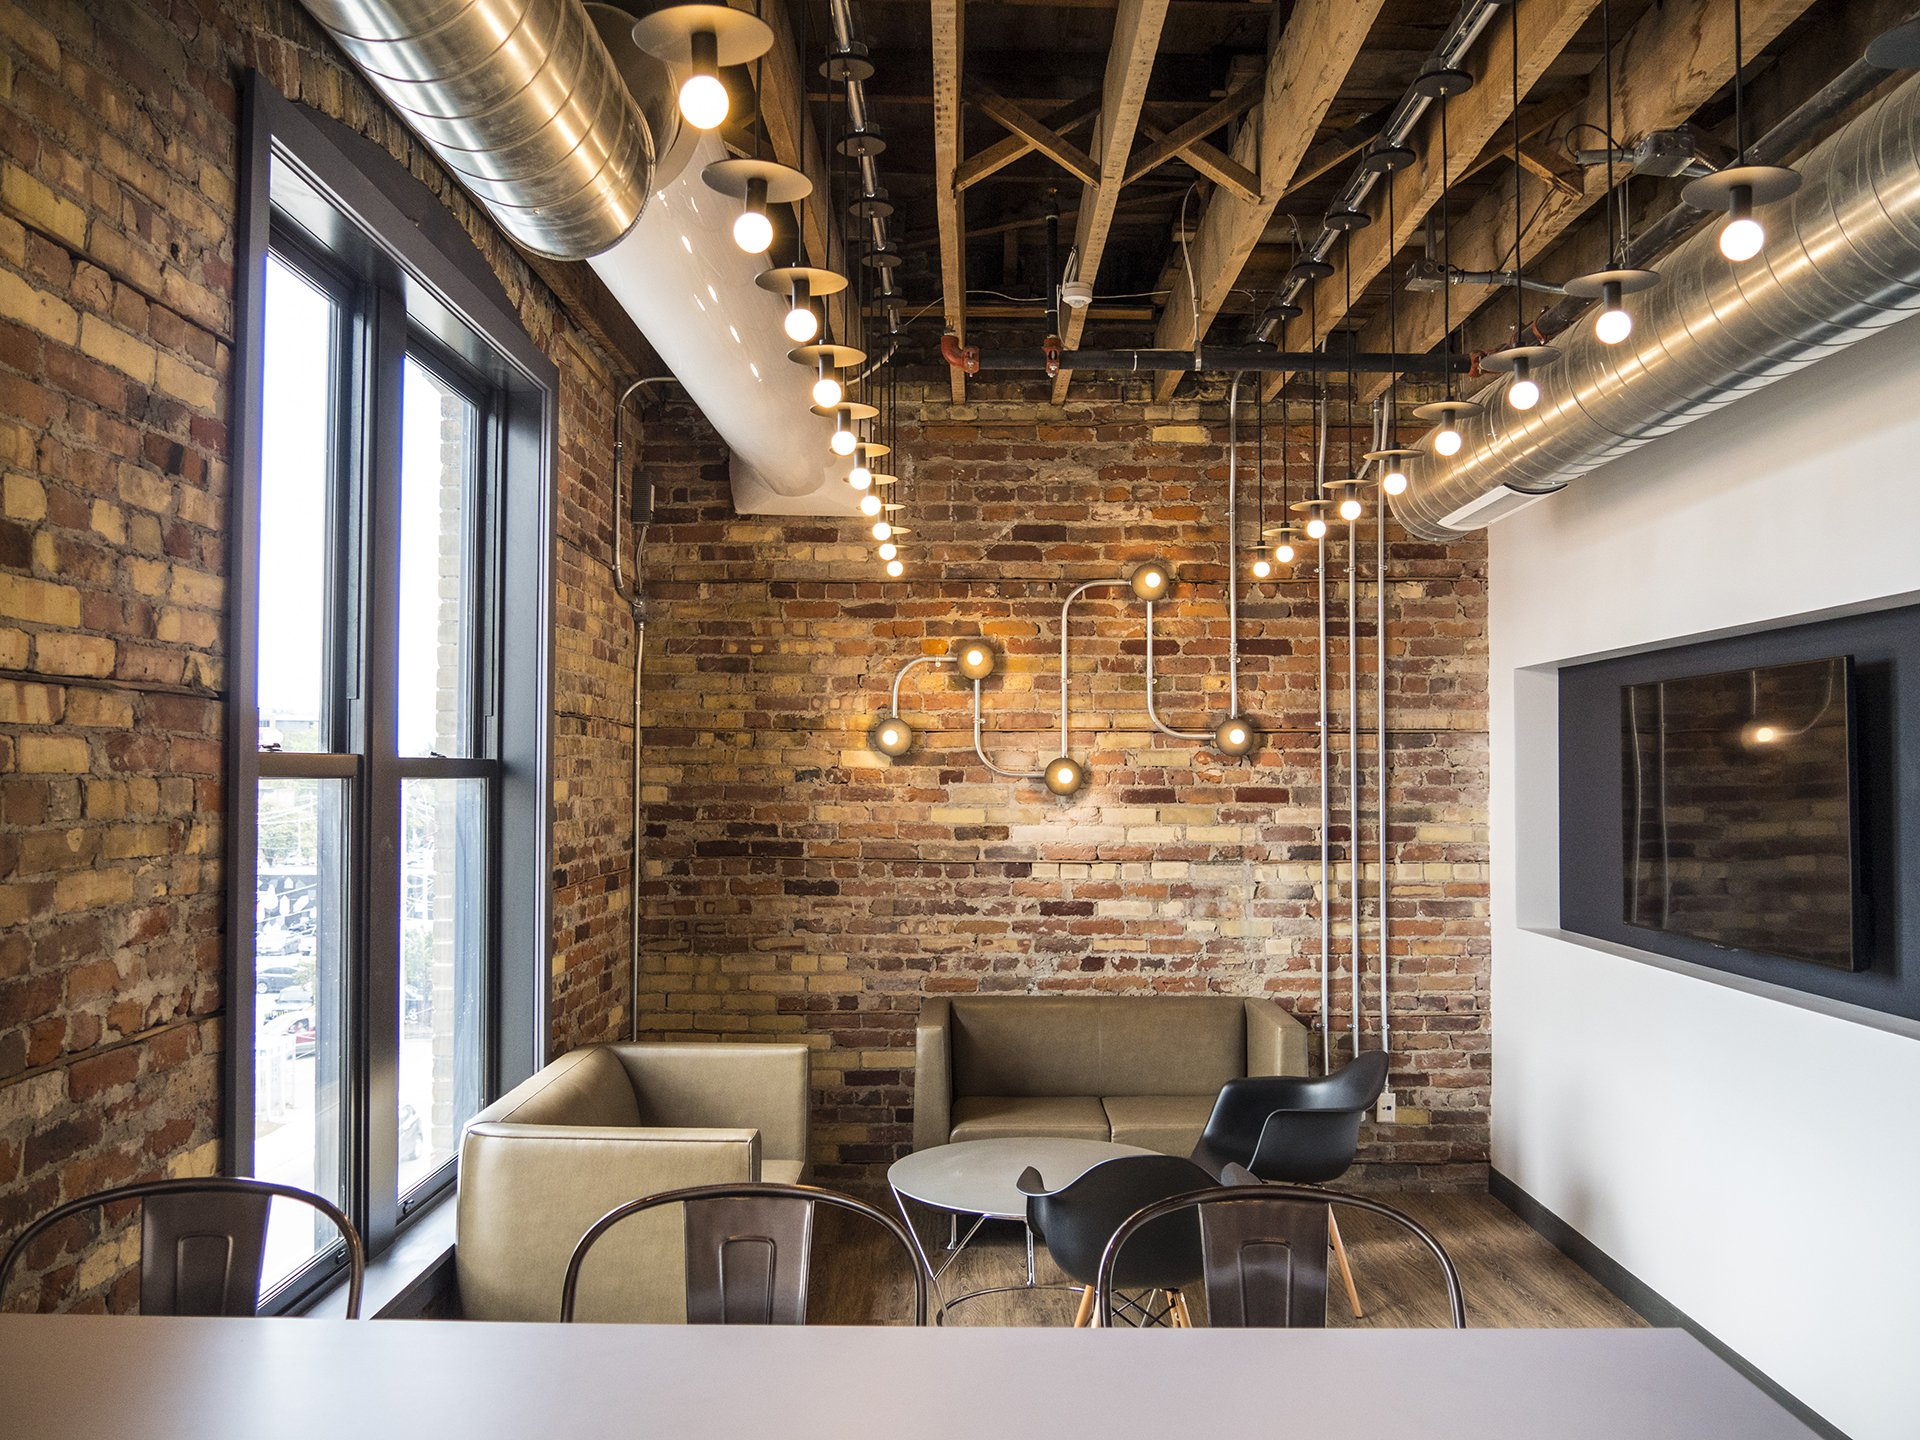 The kitchens in the WE Global Learning Center feature exposed brick and floor-to-ceiling windows.